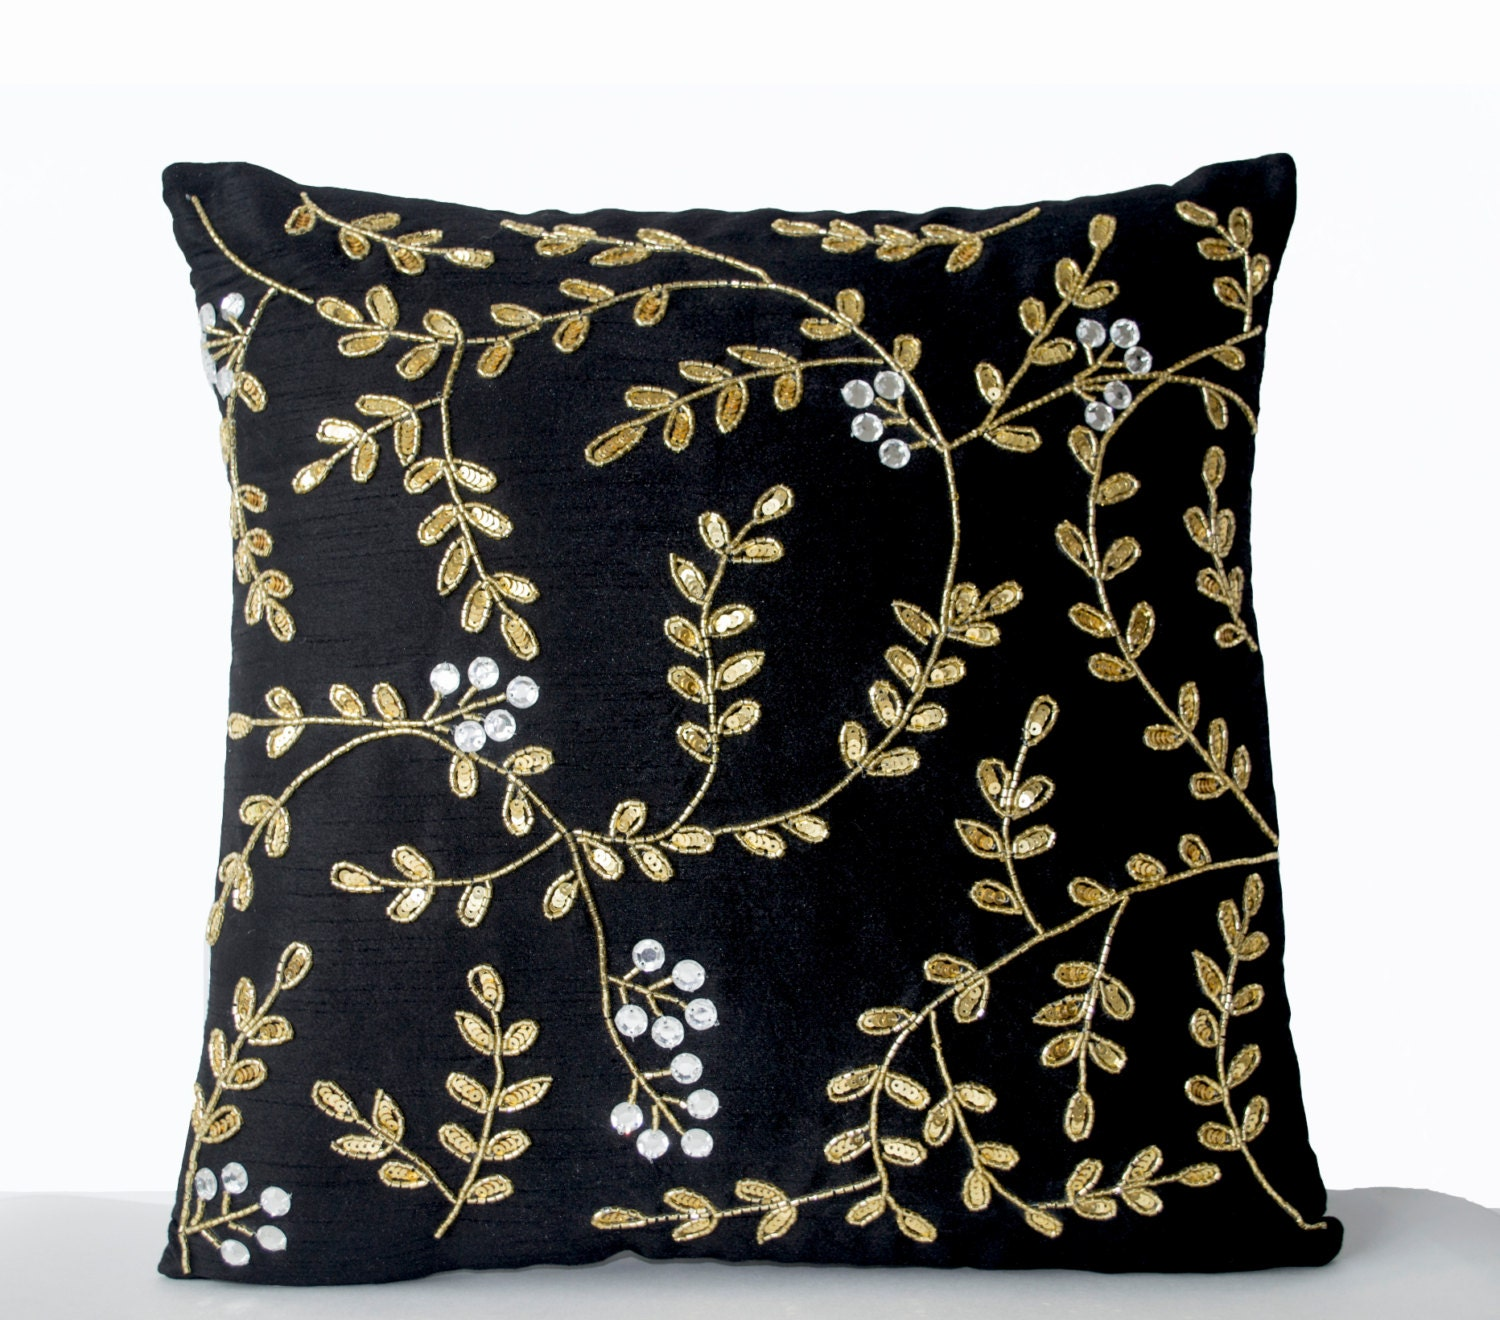 Black couch pillows black accent pillow black gold pillows for Designer accent pillows